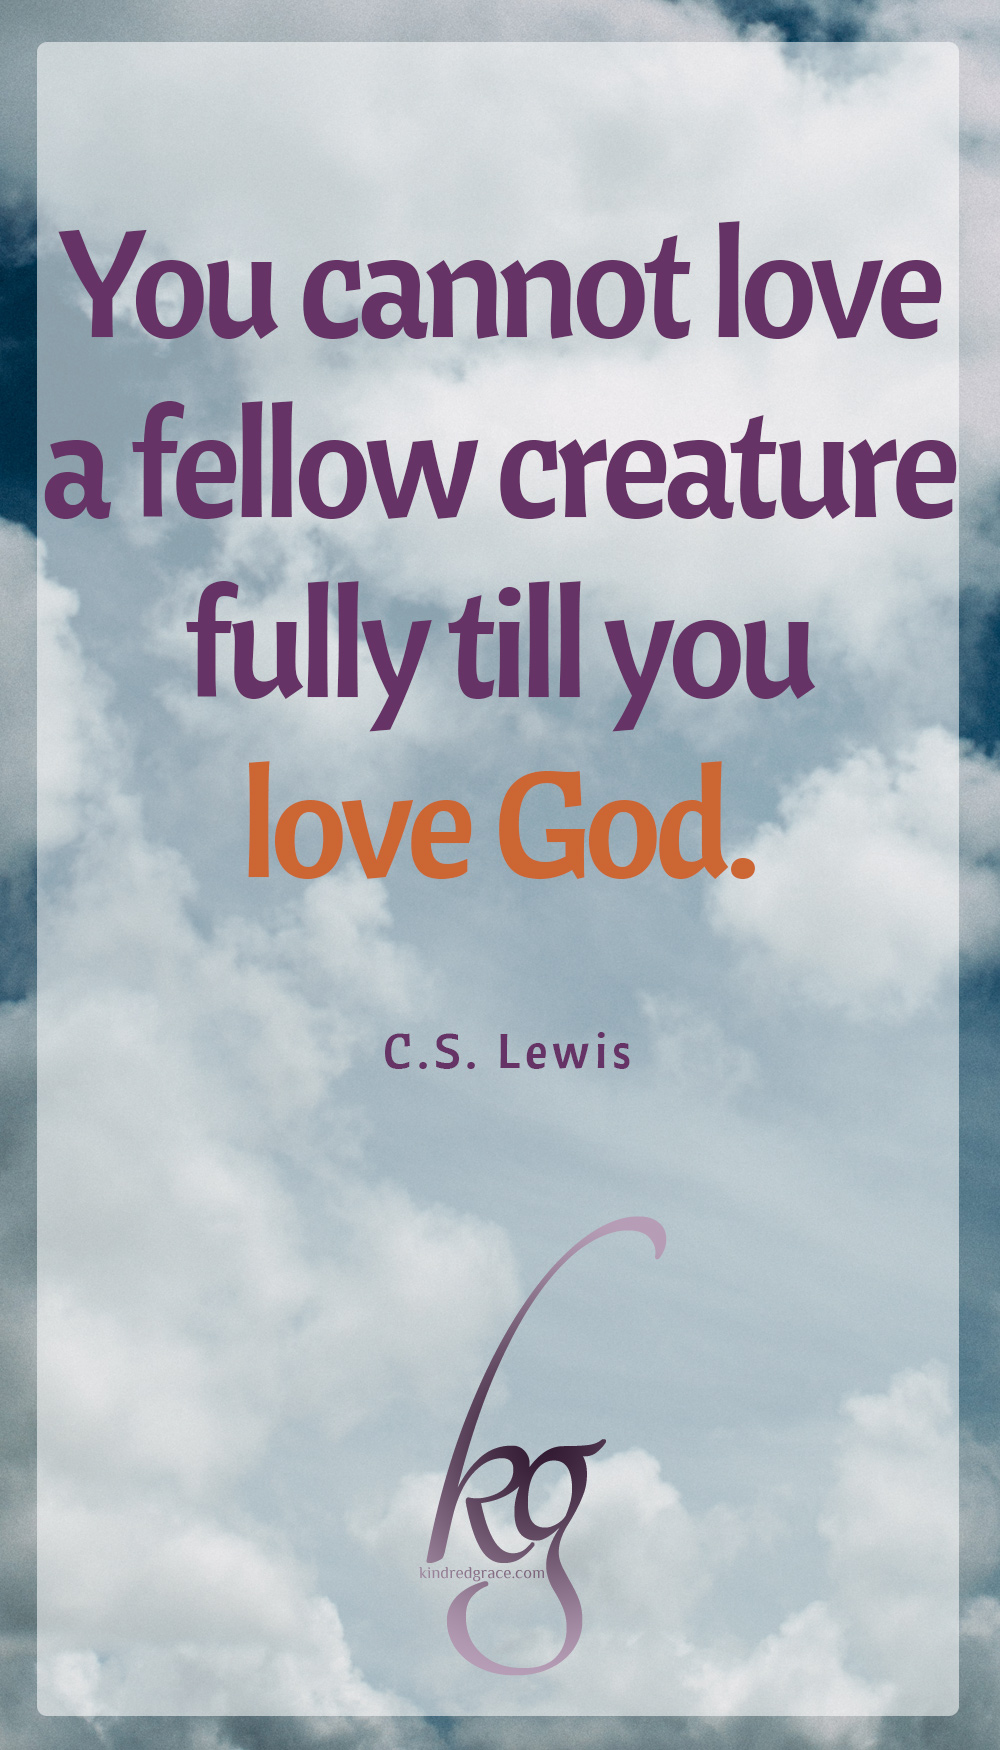 """You cannot love a fellow creature fully till you love God."" (C.S. Lewis in ""The Great Divorce"")"